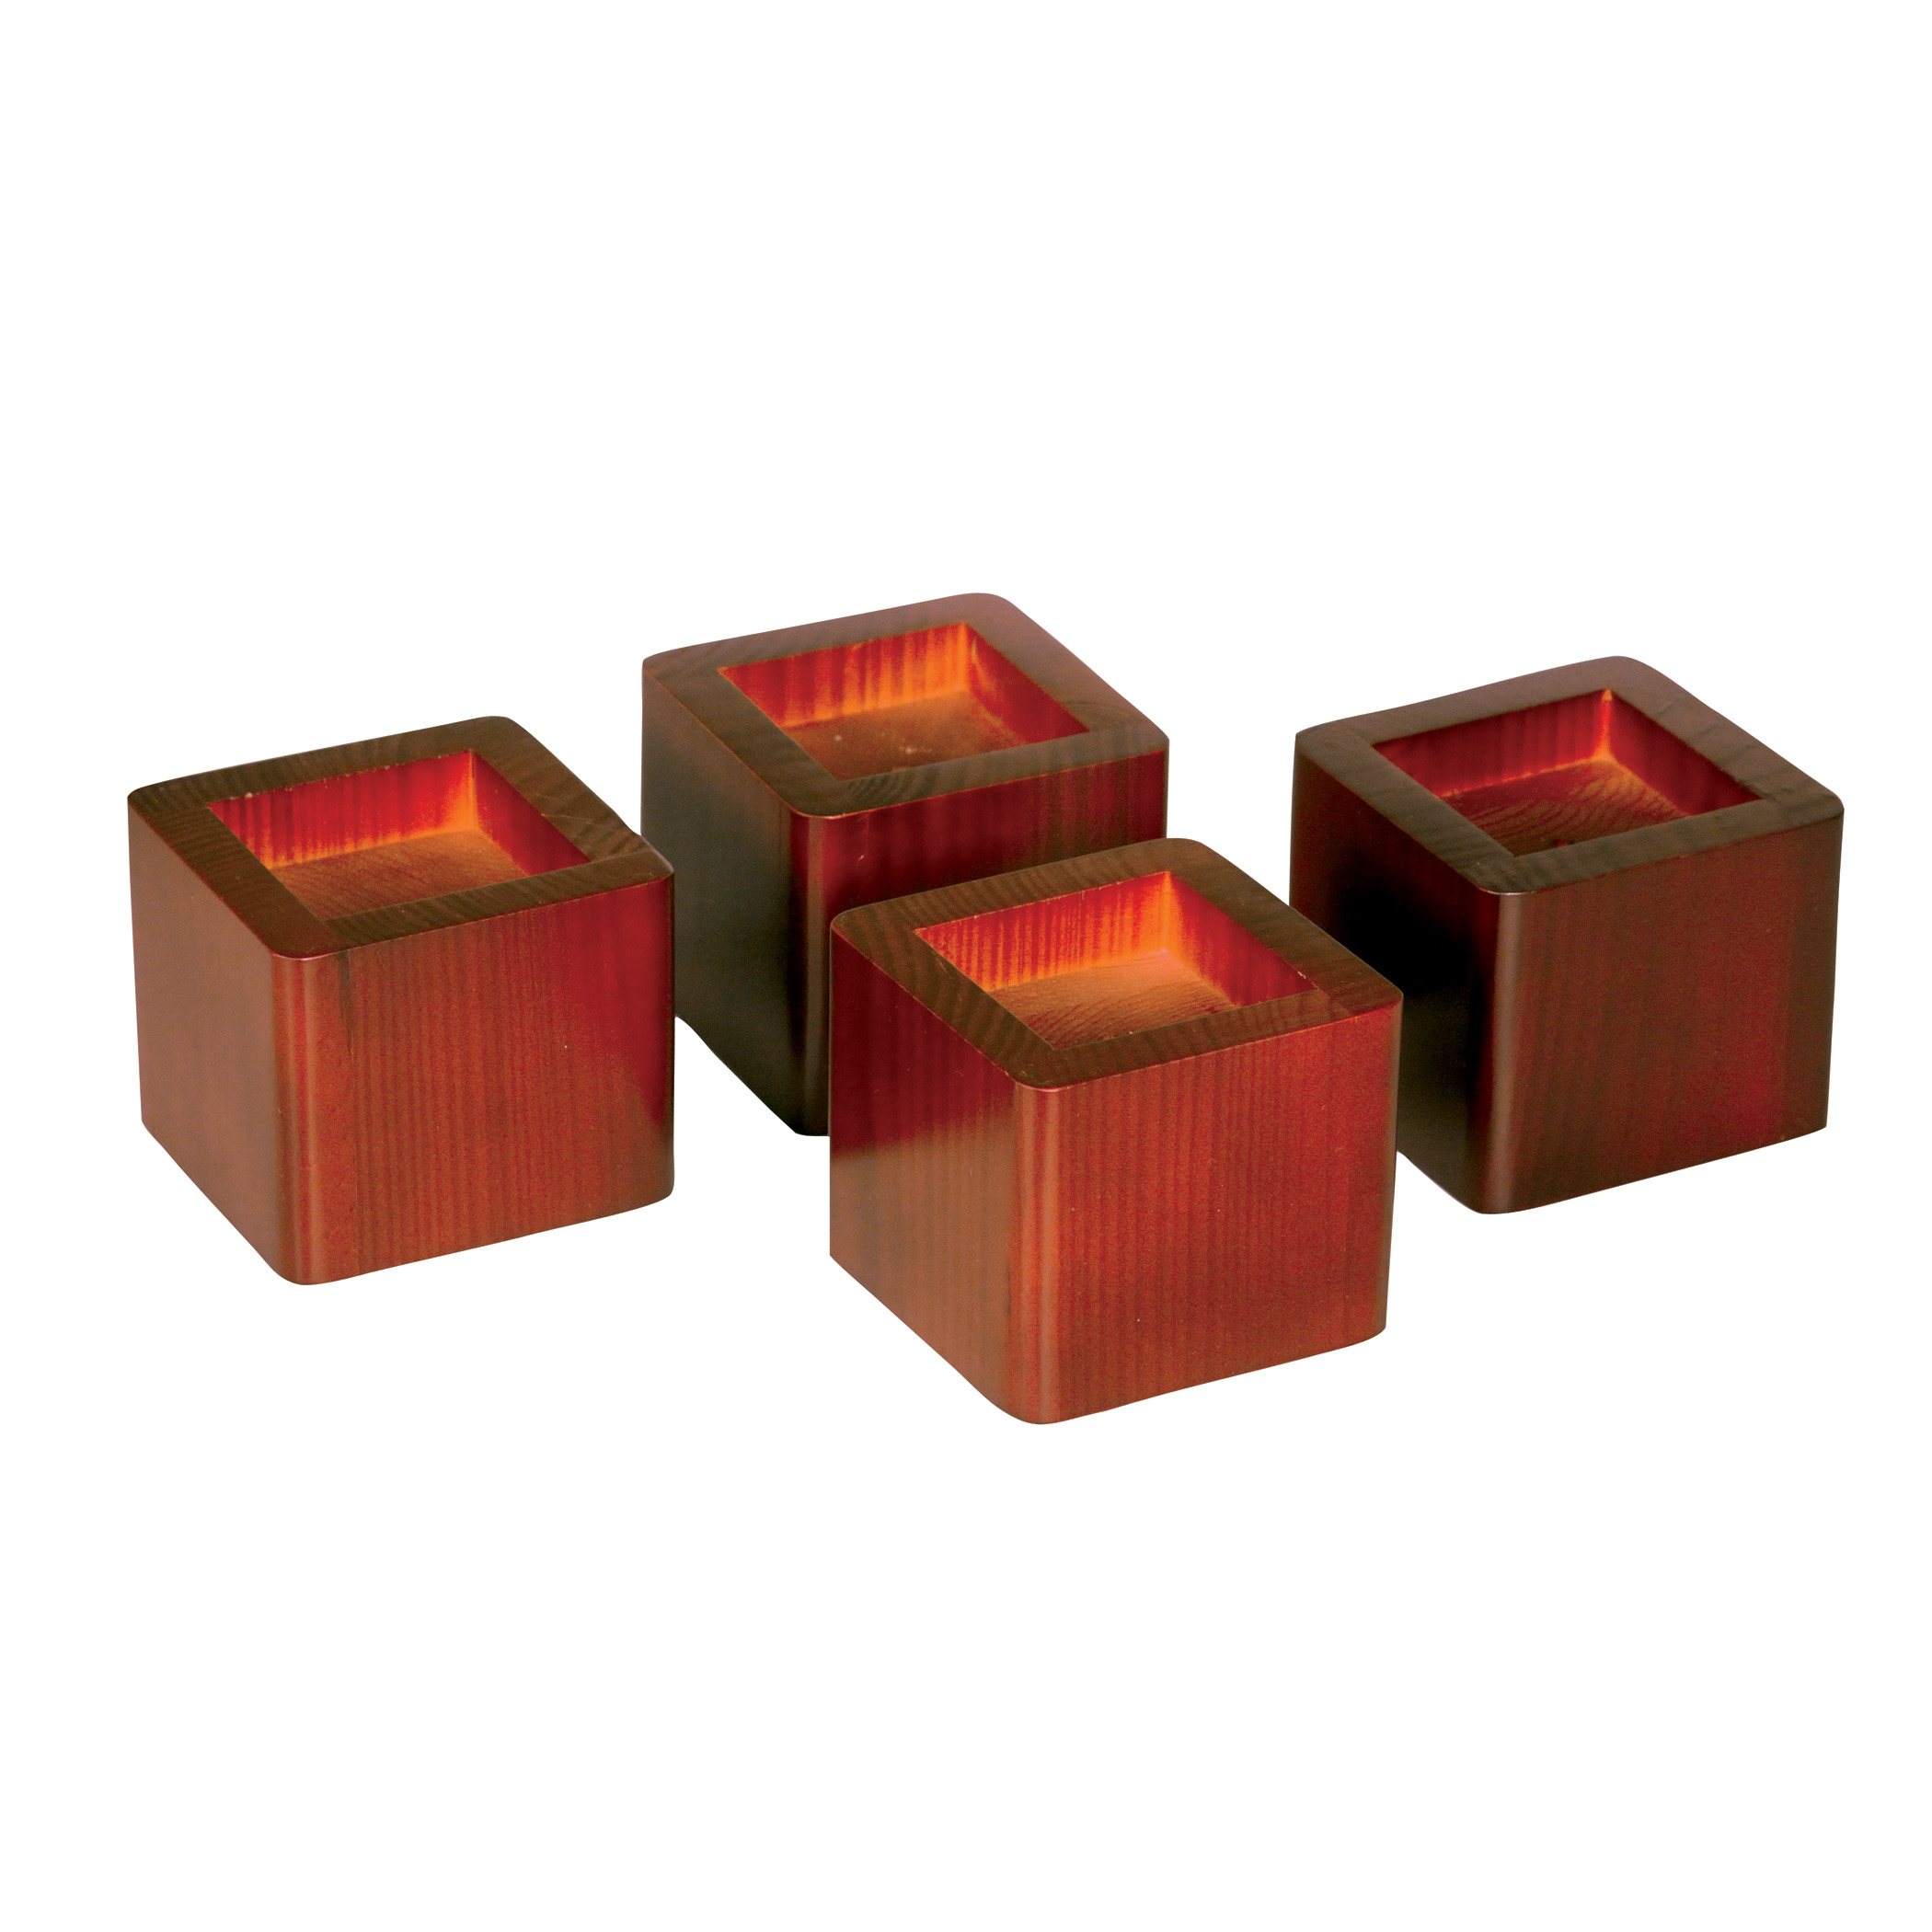 Set of 4 Bed Risers - MahoganyItem #5980-4 - Stackable with the purchase of two complete sets to hold a bed weight of up to 500 lbs. Raises the bed up to 6.25